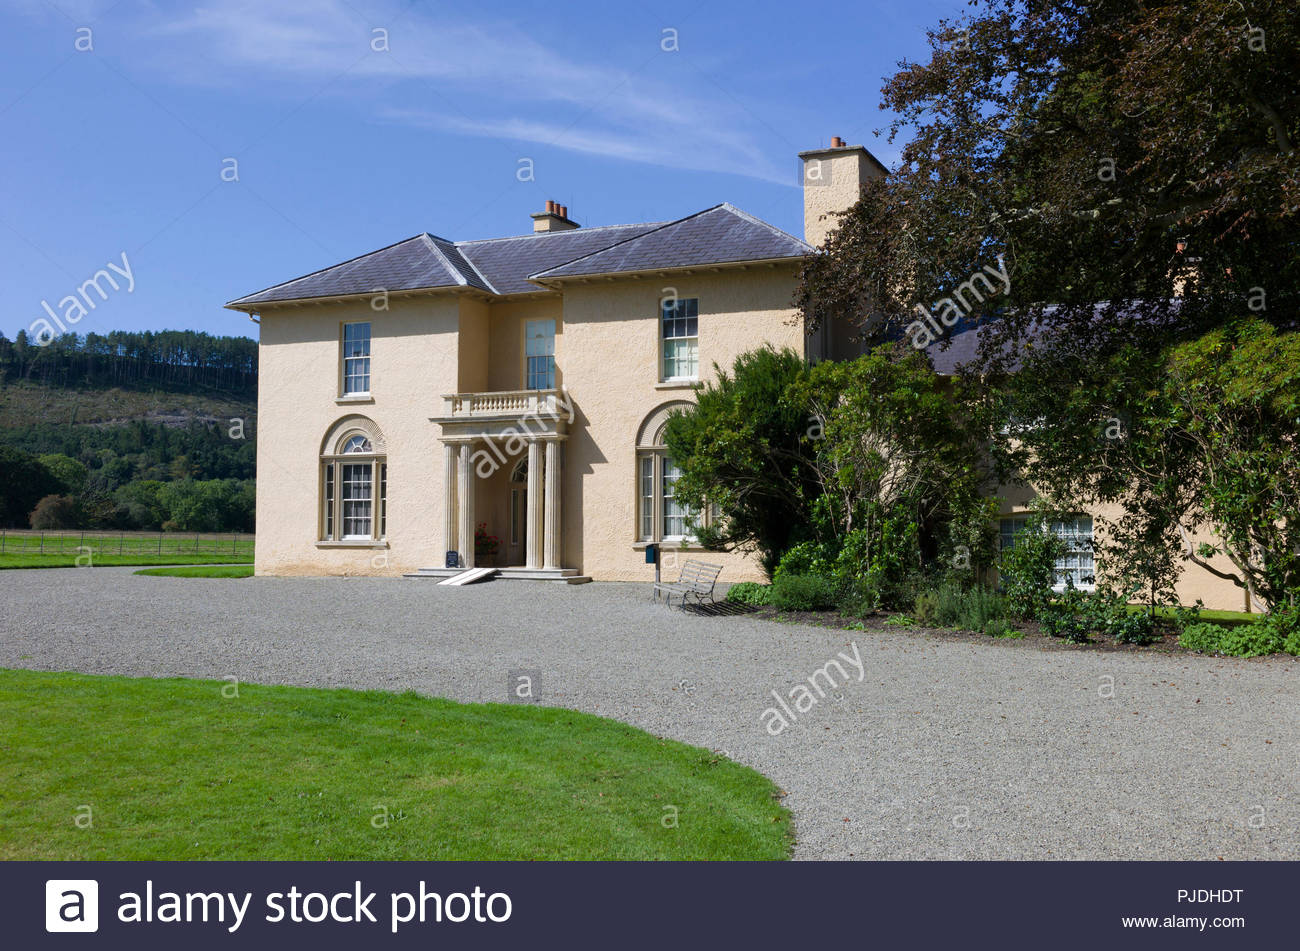 Llanerchaeron, Ceredigion, Wales, UK. The Georgian villa is a complete early example of the work of noted architect John Nash, designed in the 1790's. Stock Photo